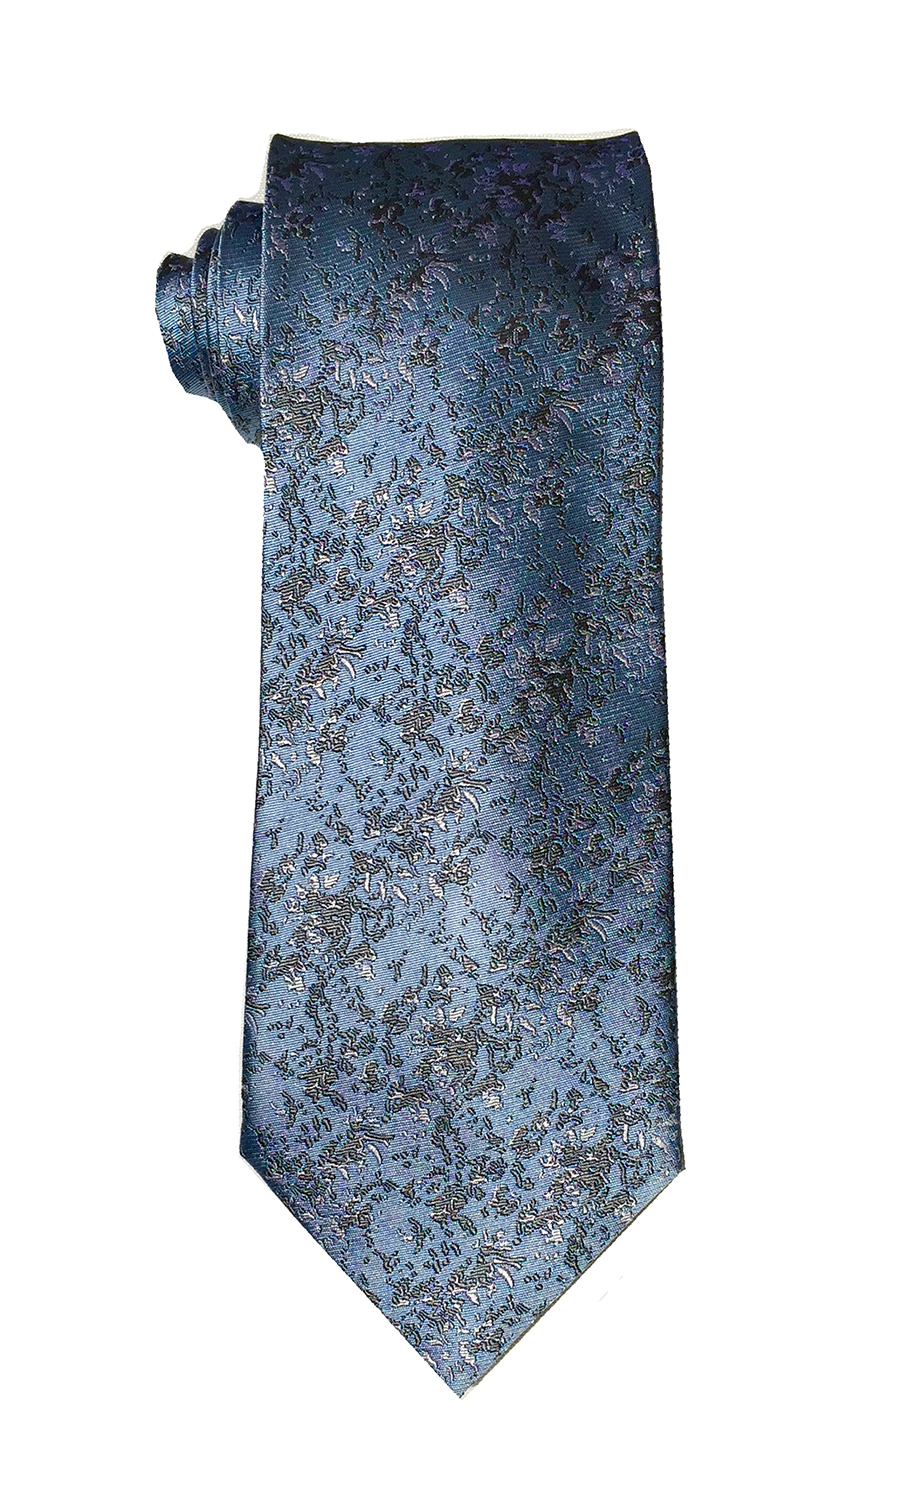 Arctic Drift tie in arctic blue